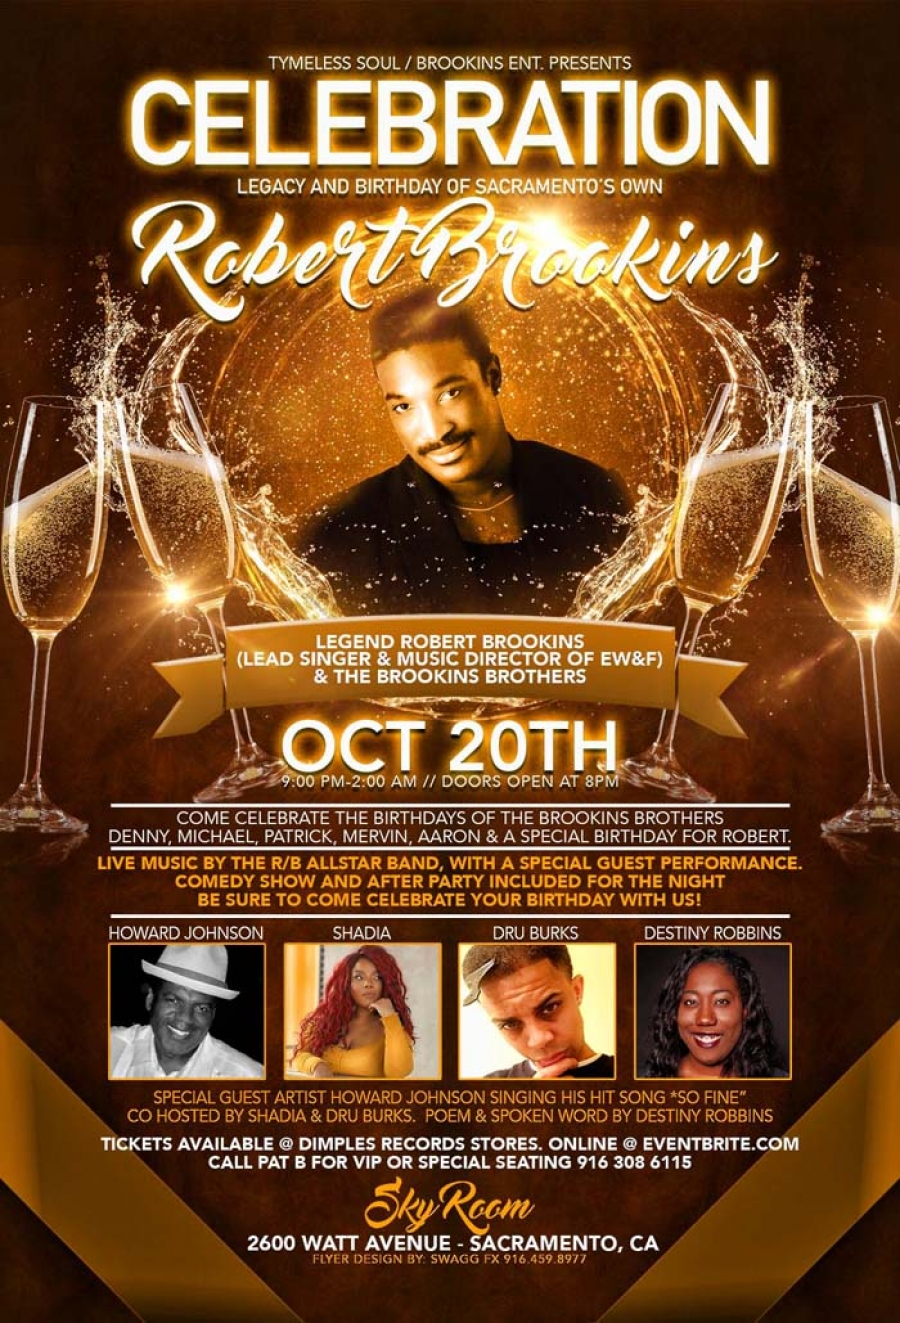 Oct 20th - Celebration Legacy & Birthday of Sacramento's Own Robert Brookins